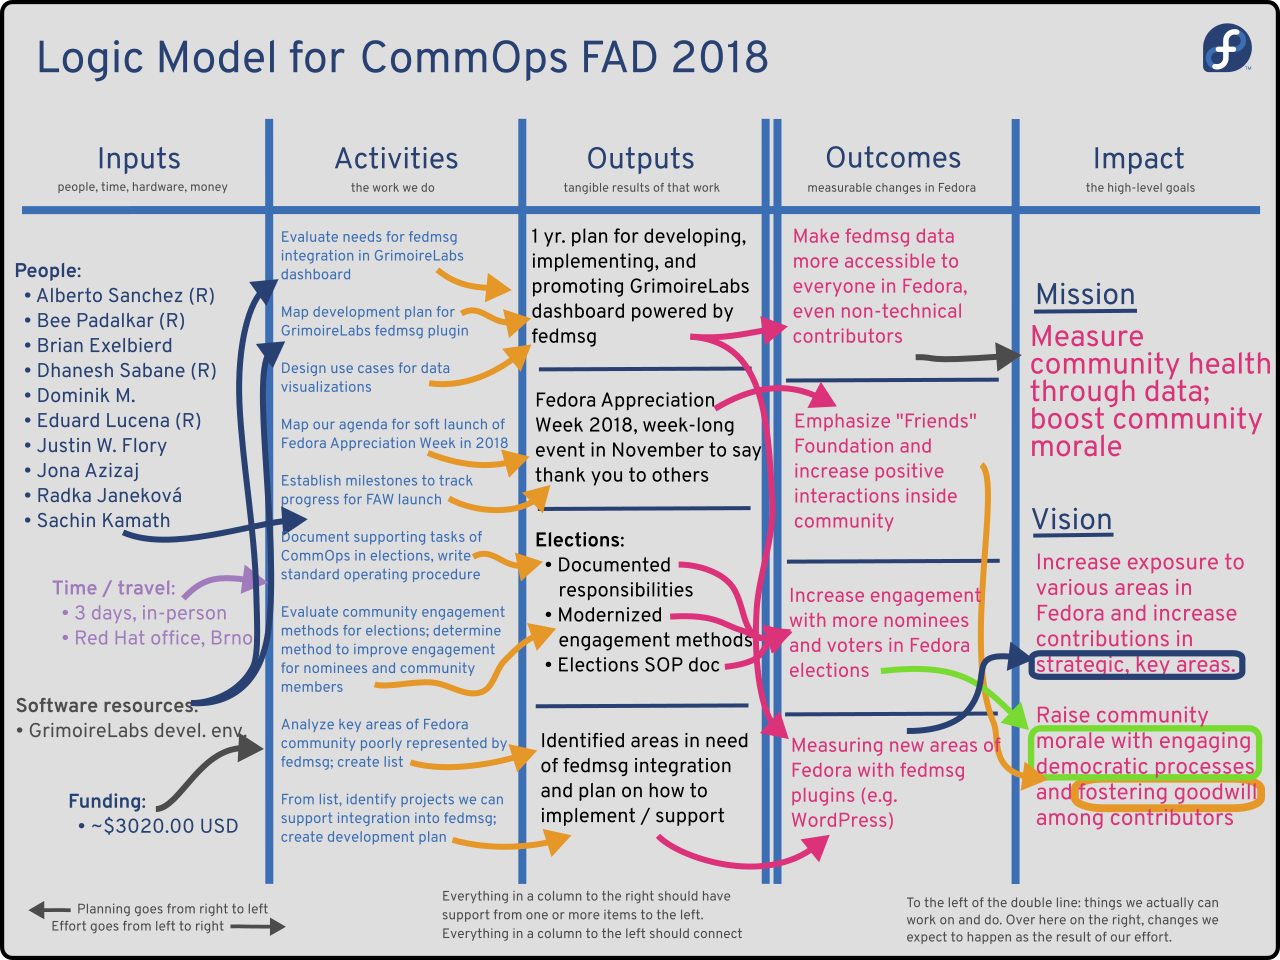 CommOps FAD 2018 Logic Model